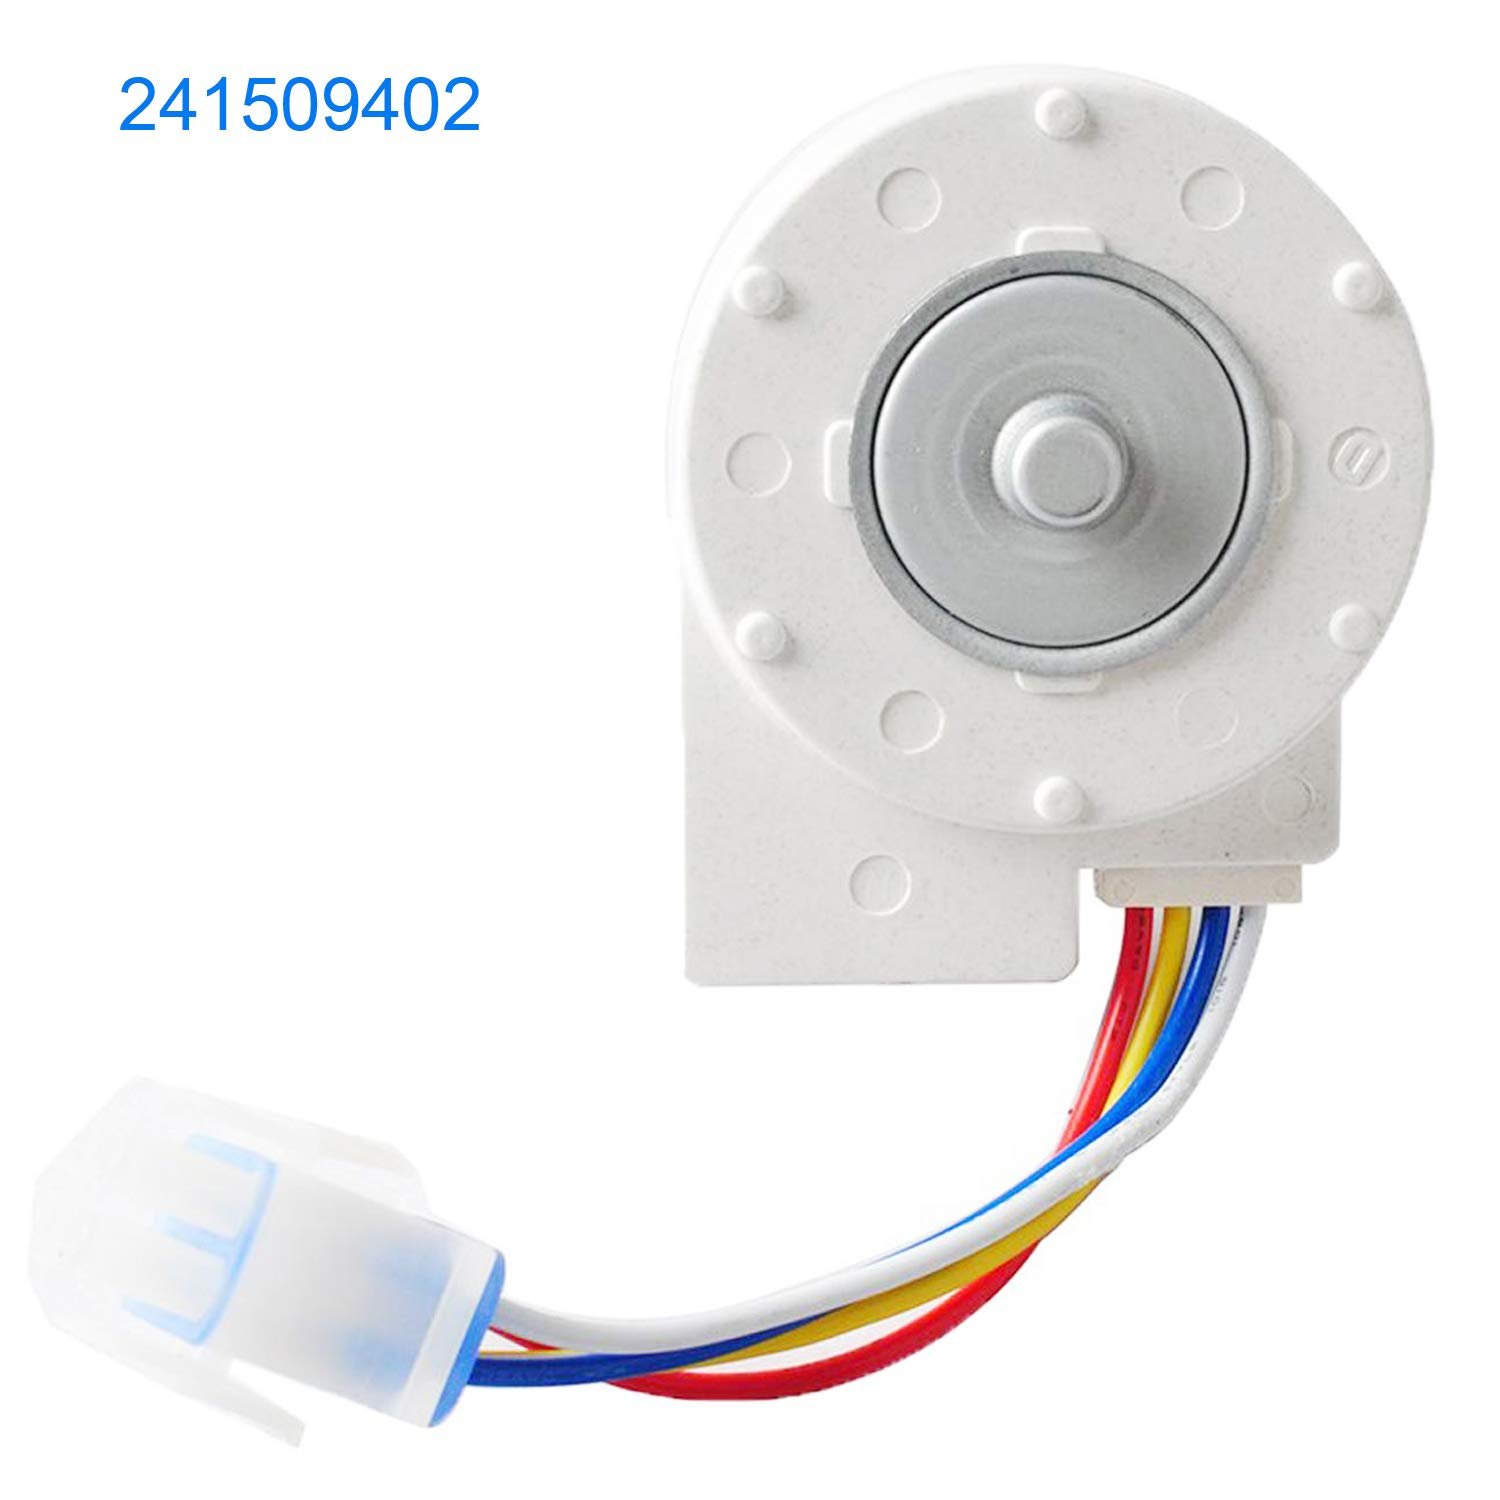 241509402 Evaporator Fan Motor Compatible with Frigidaire Electrolux Kenmore Refrigerator Replaces AP3958808 PS1526073 by Wadoy